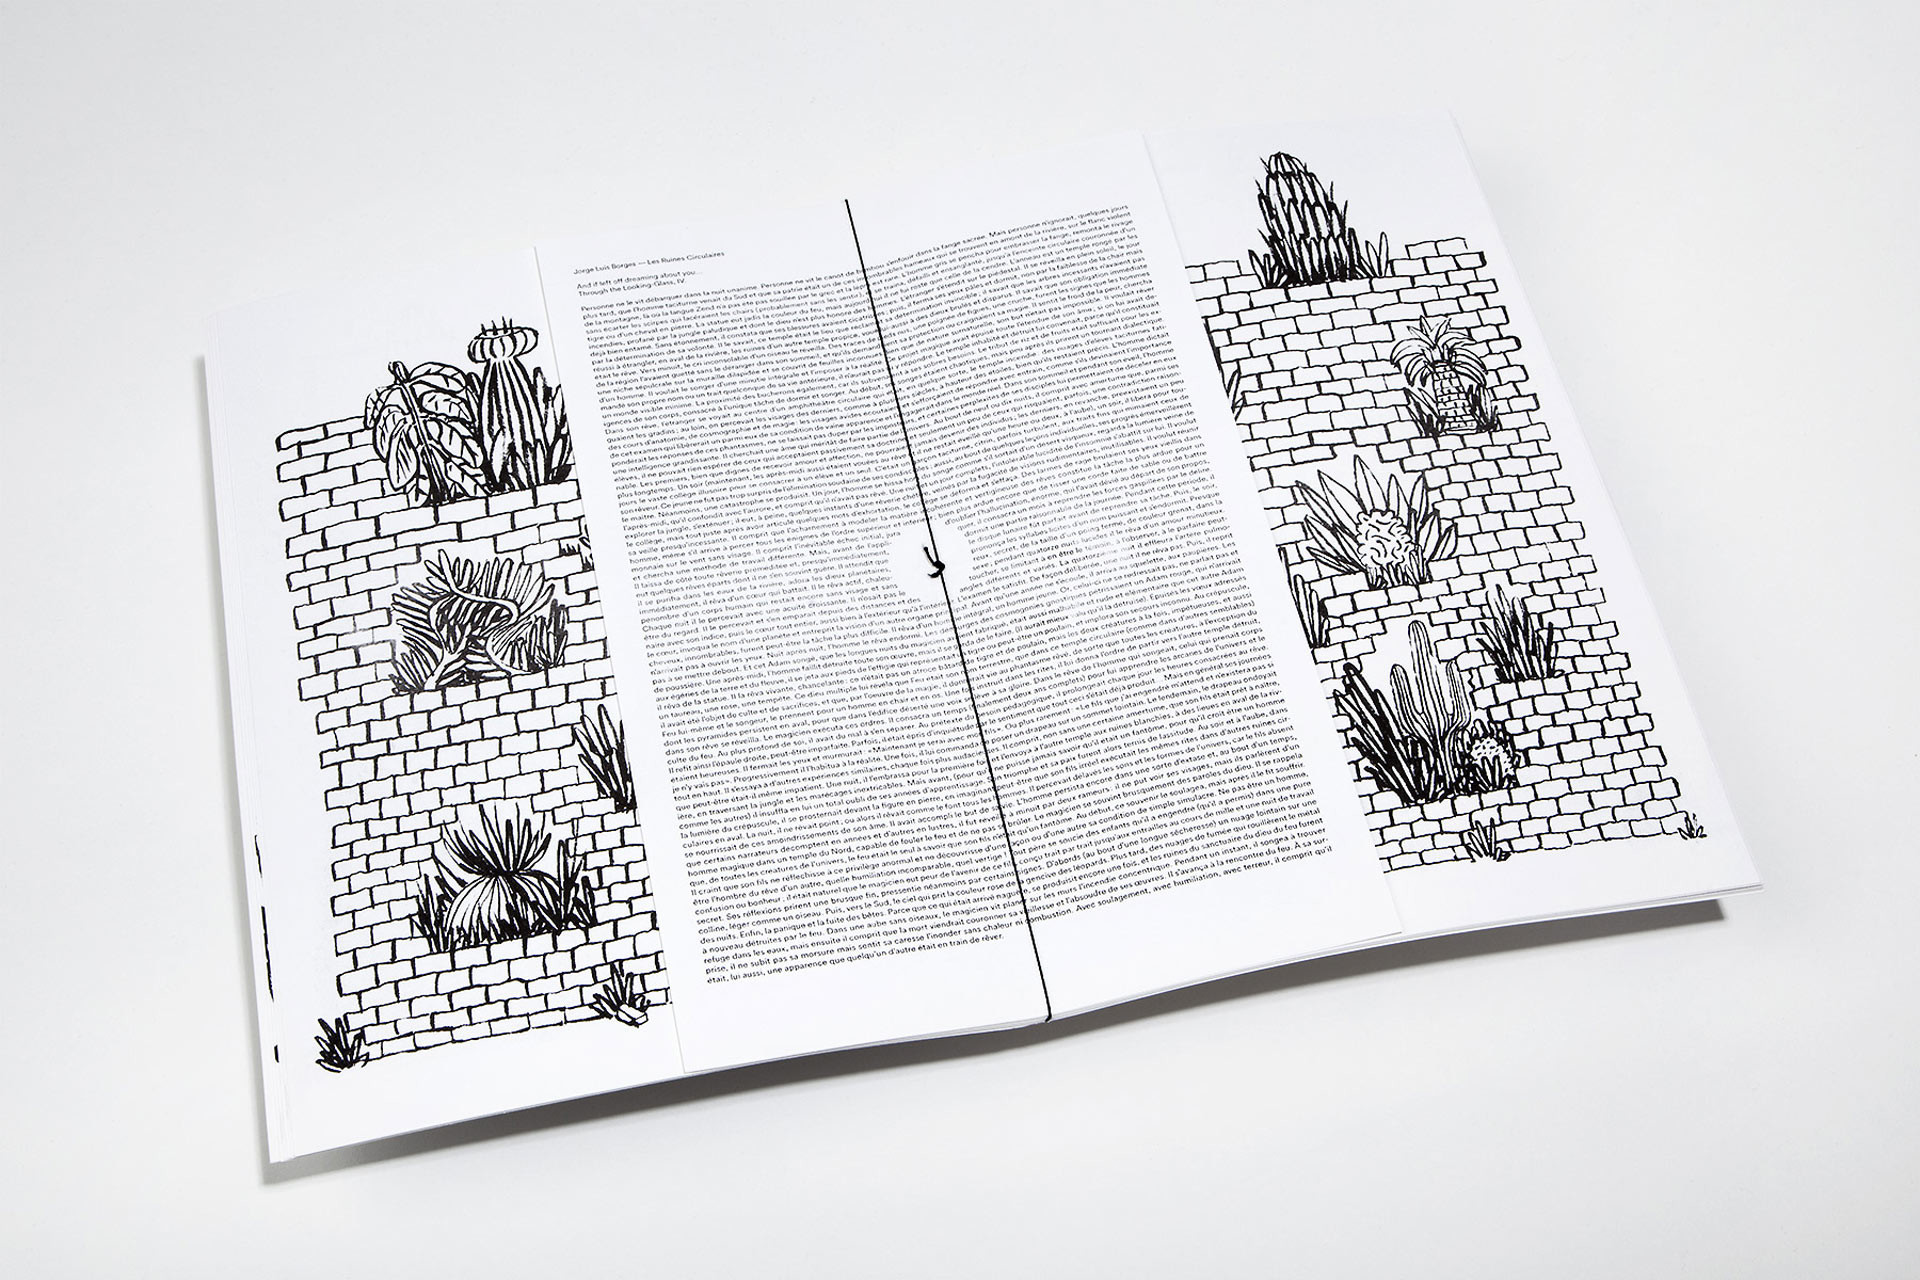 FICHTRE STUDIO - Mathias Forbach PUBLICATION:RUINS